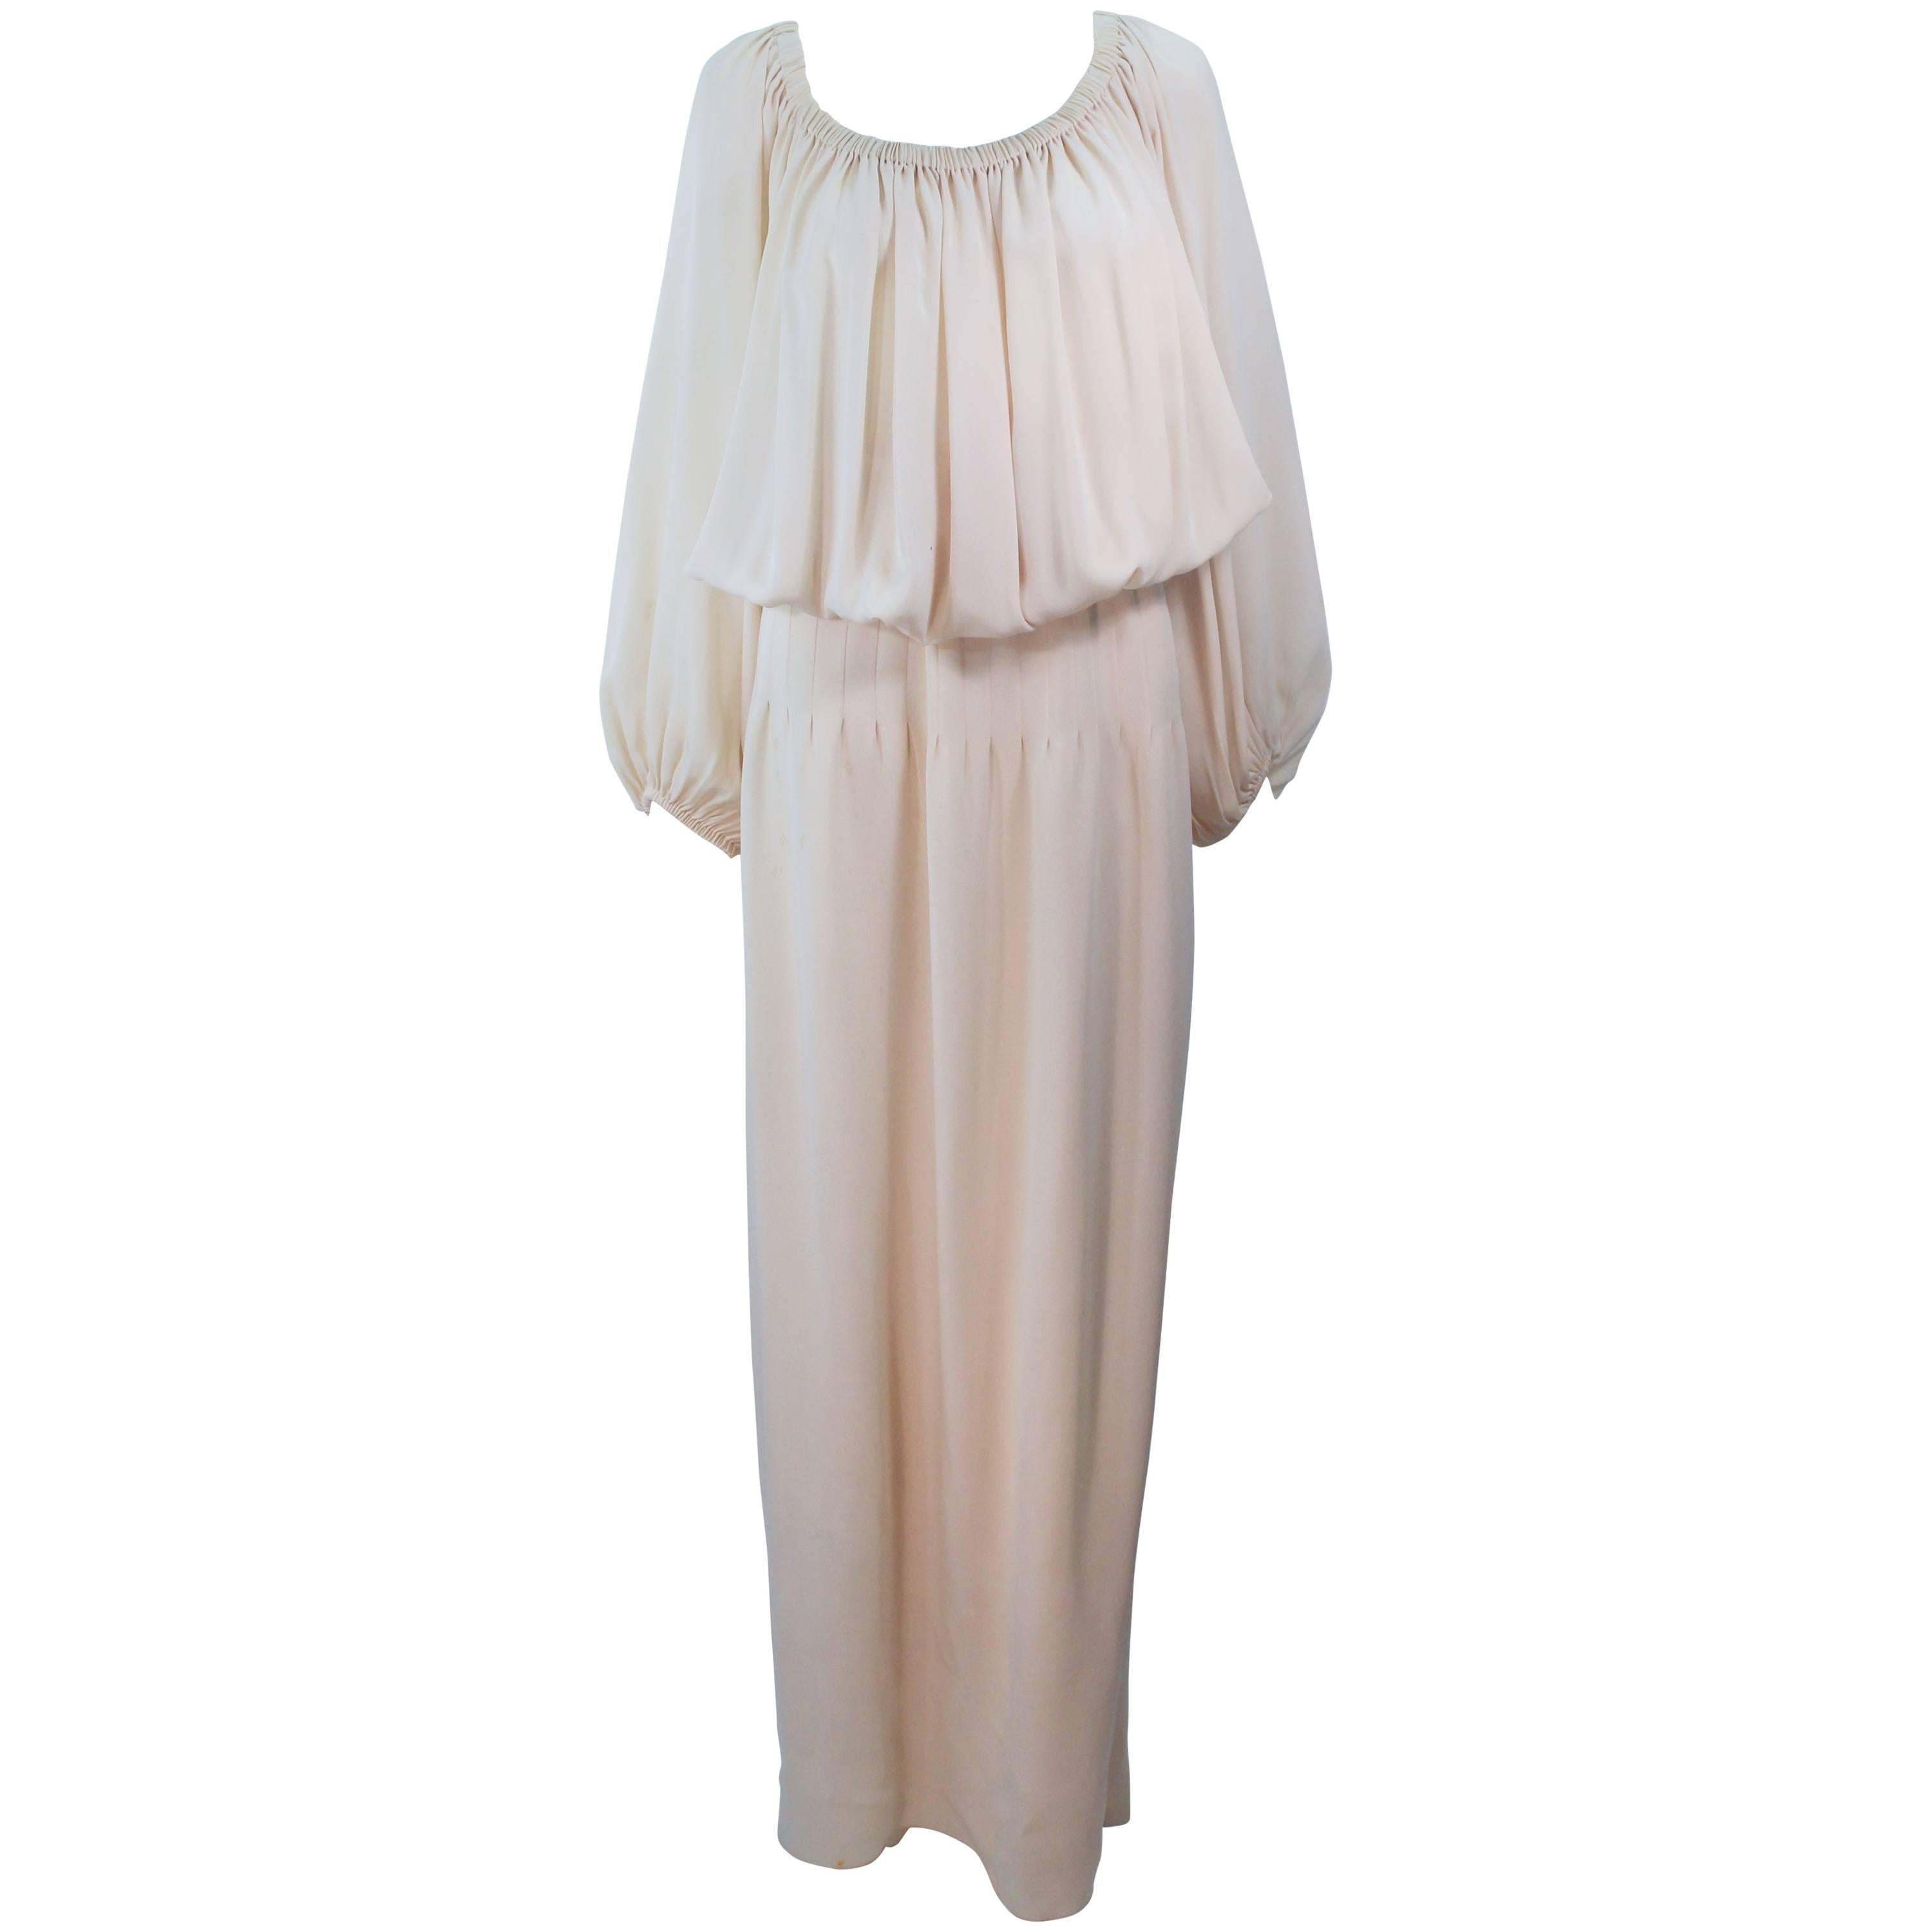 CHRISTIAN DIOR COUTURE Provenance Betsy Bloomingdale Nude Silk Chiffon Gown